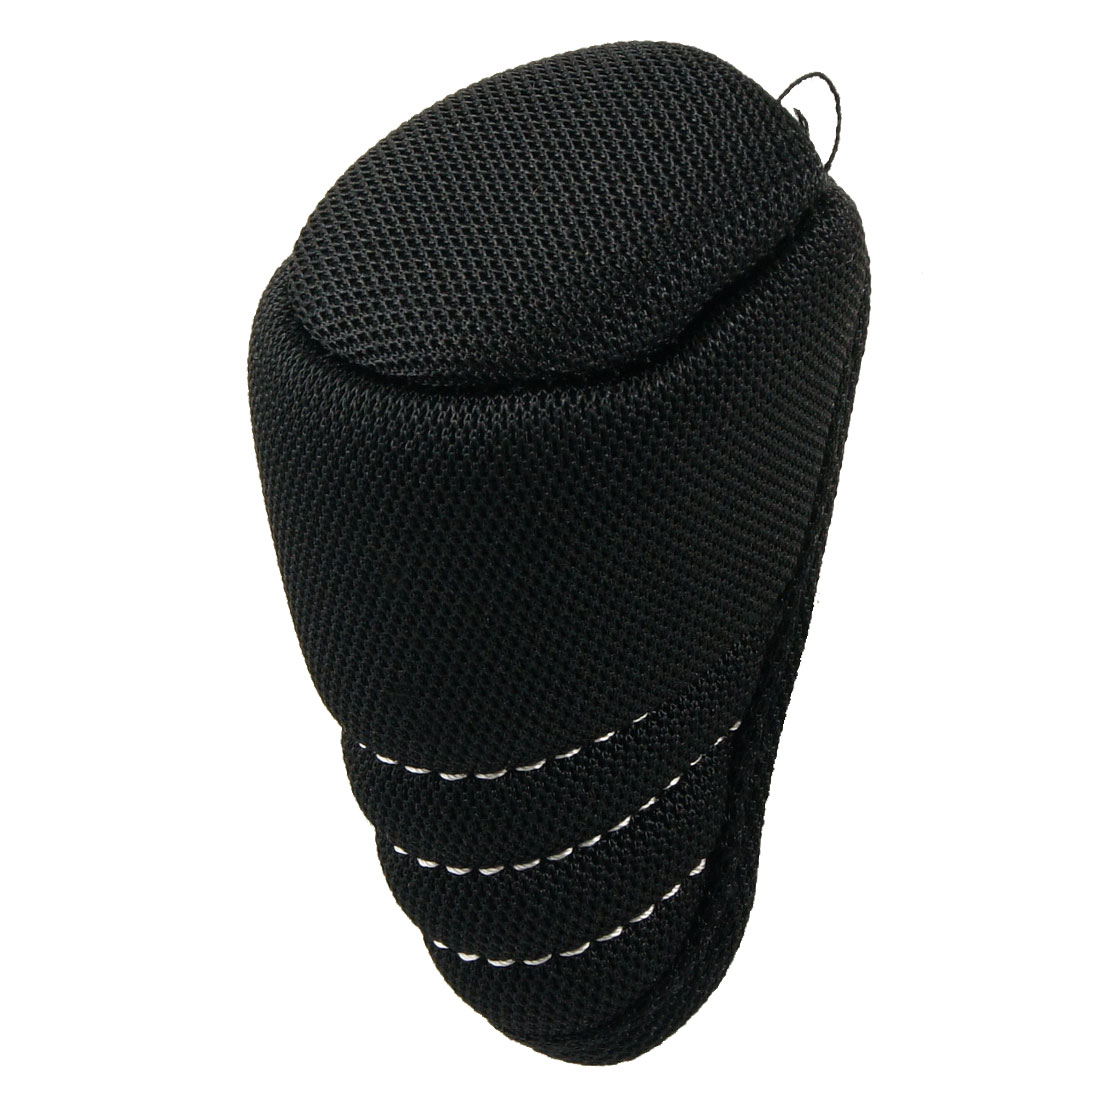 Auto Car Gear Shift Knob Protector Black Zip up Cover Zbmxt